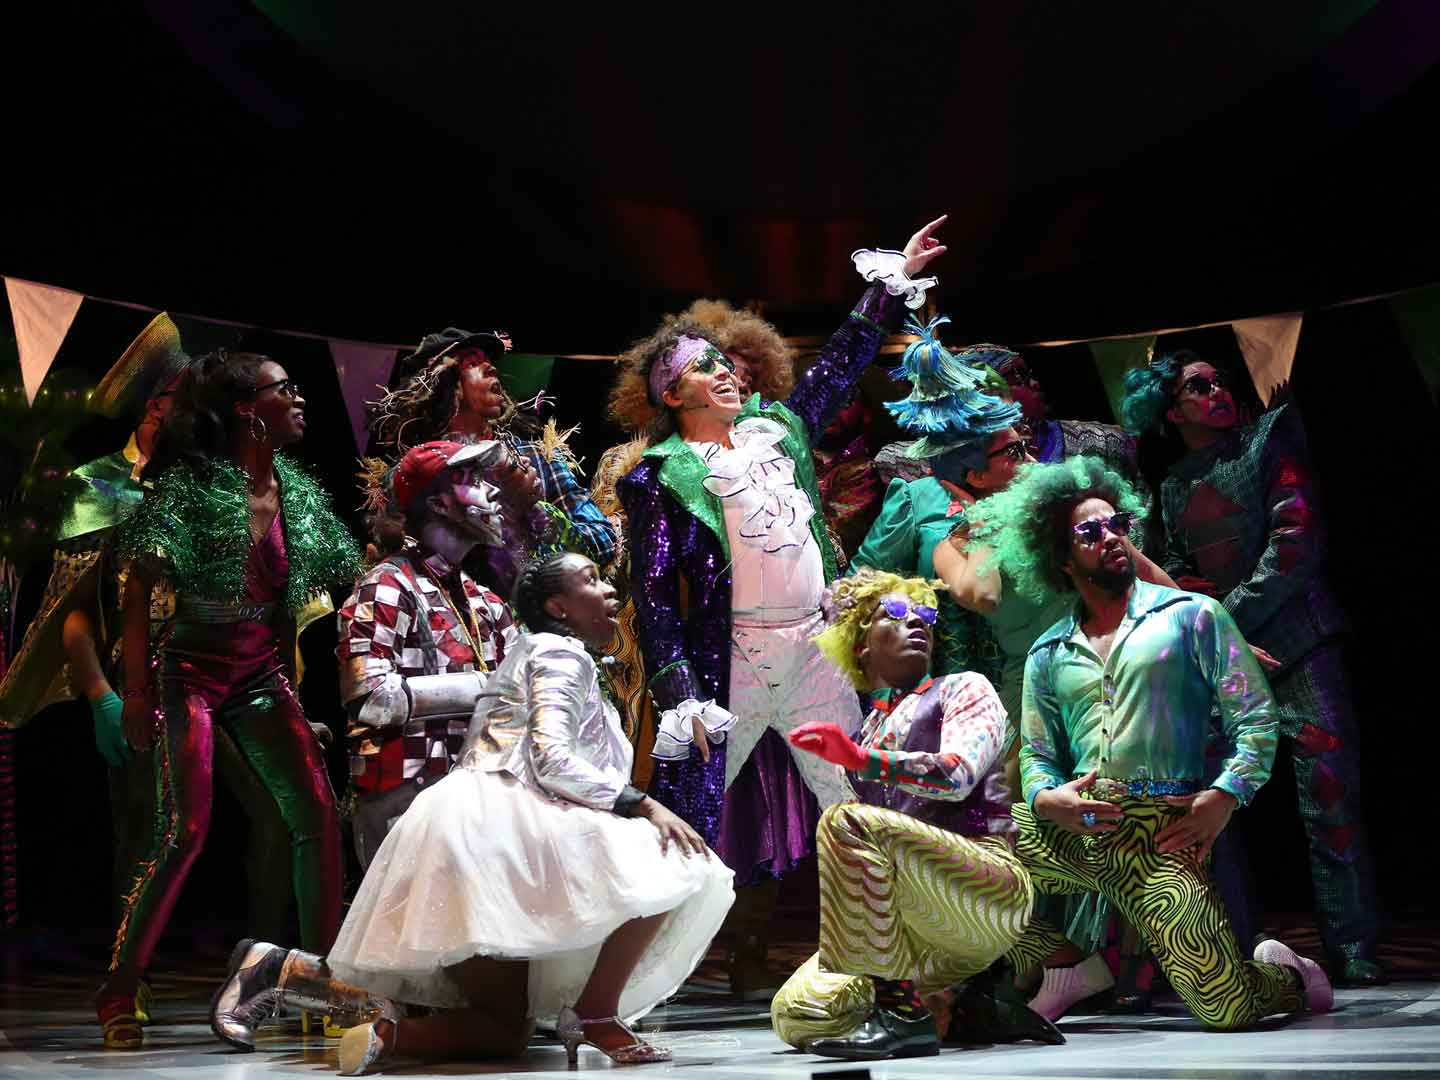 The character of The Wiz dressed in a purple velvet coat with tails, puffy-breasted white shirt and while velvet pants. He is flanked by residents of the Emerald City who are sporting green glasses and wildly patterned 1970s-styled green pants, fuzzy green jackets, curly green wigs and outlandish tiered hats in green, of course!